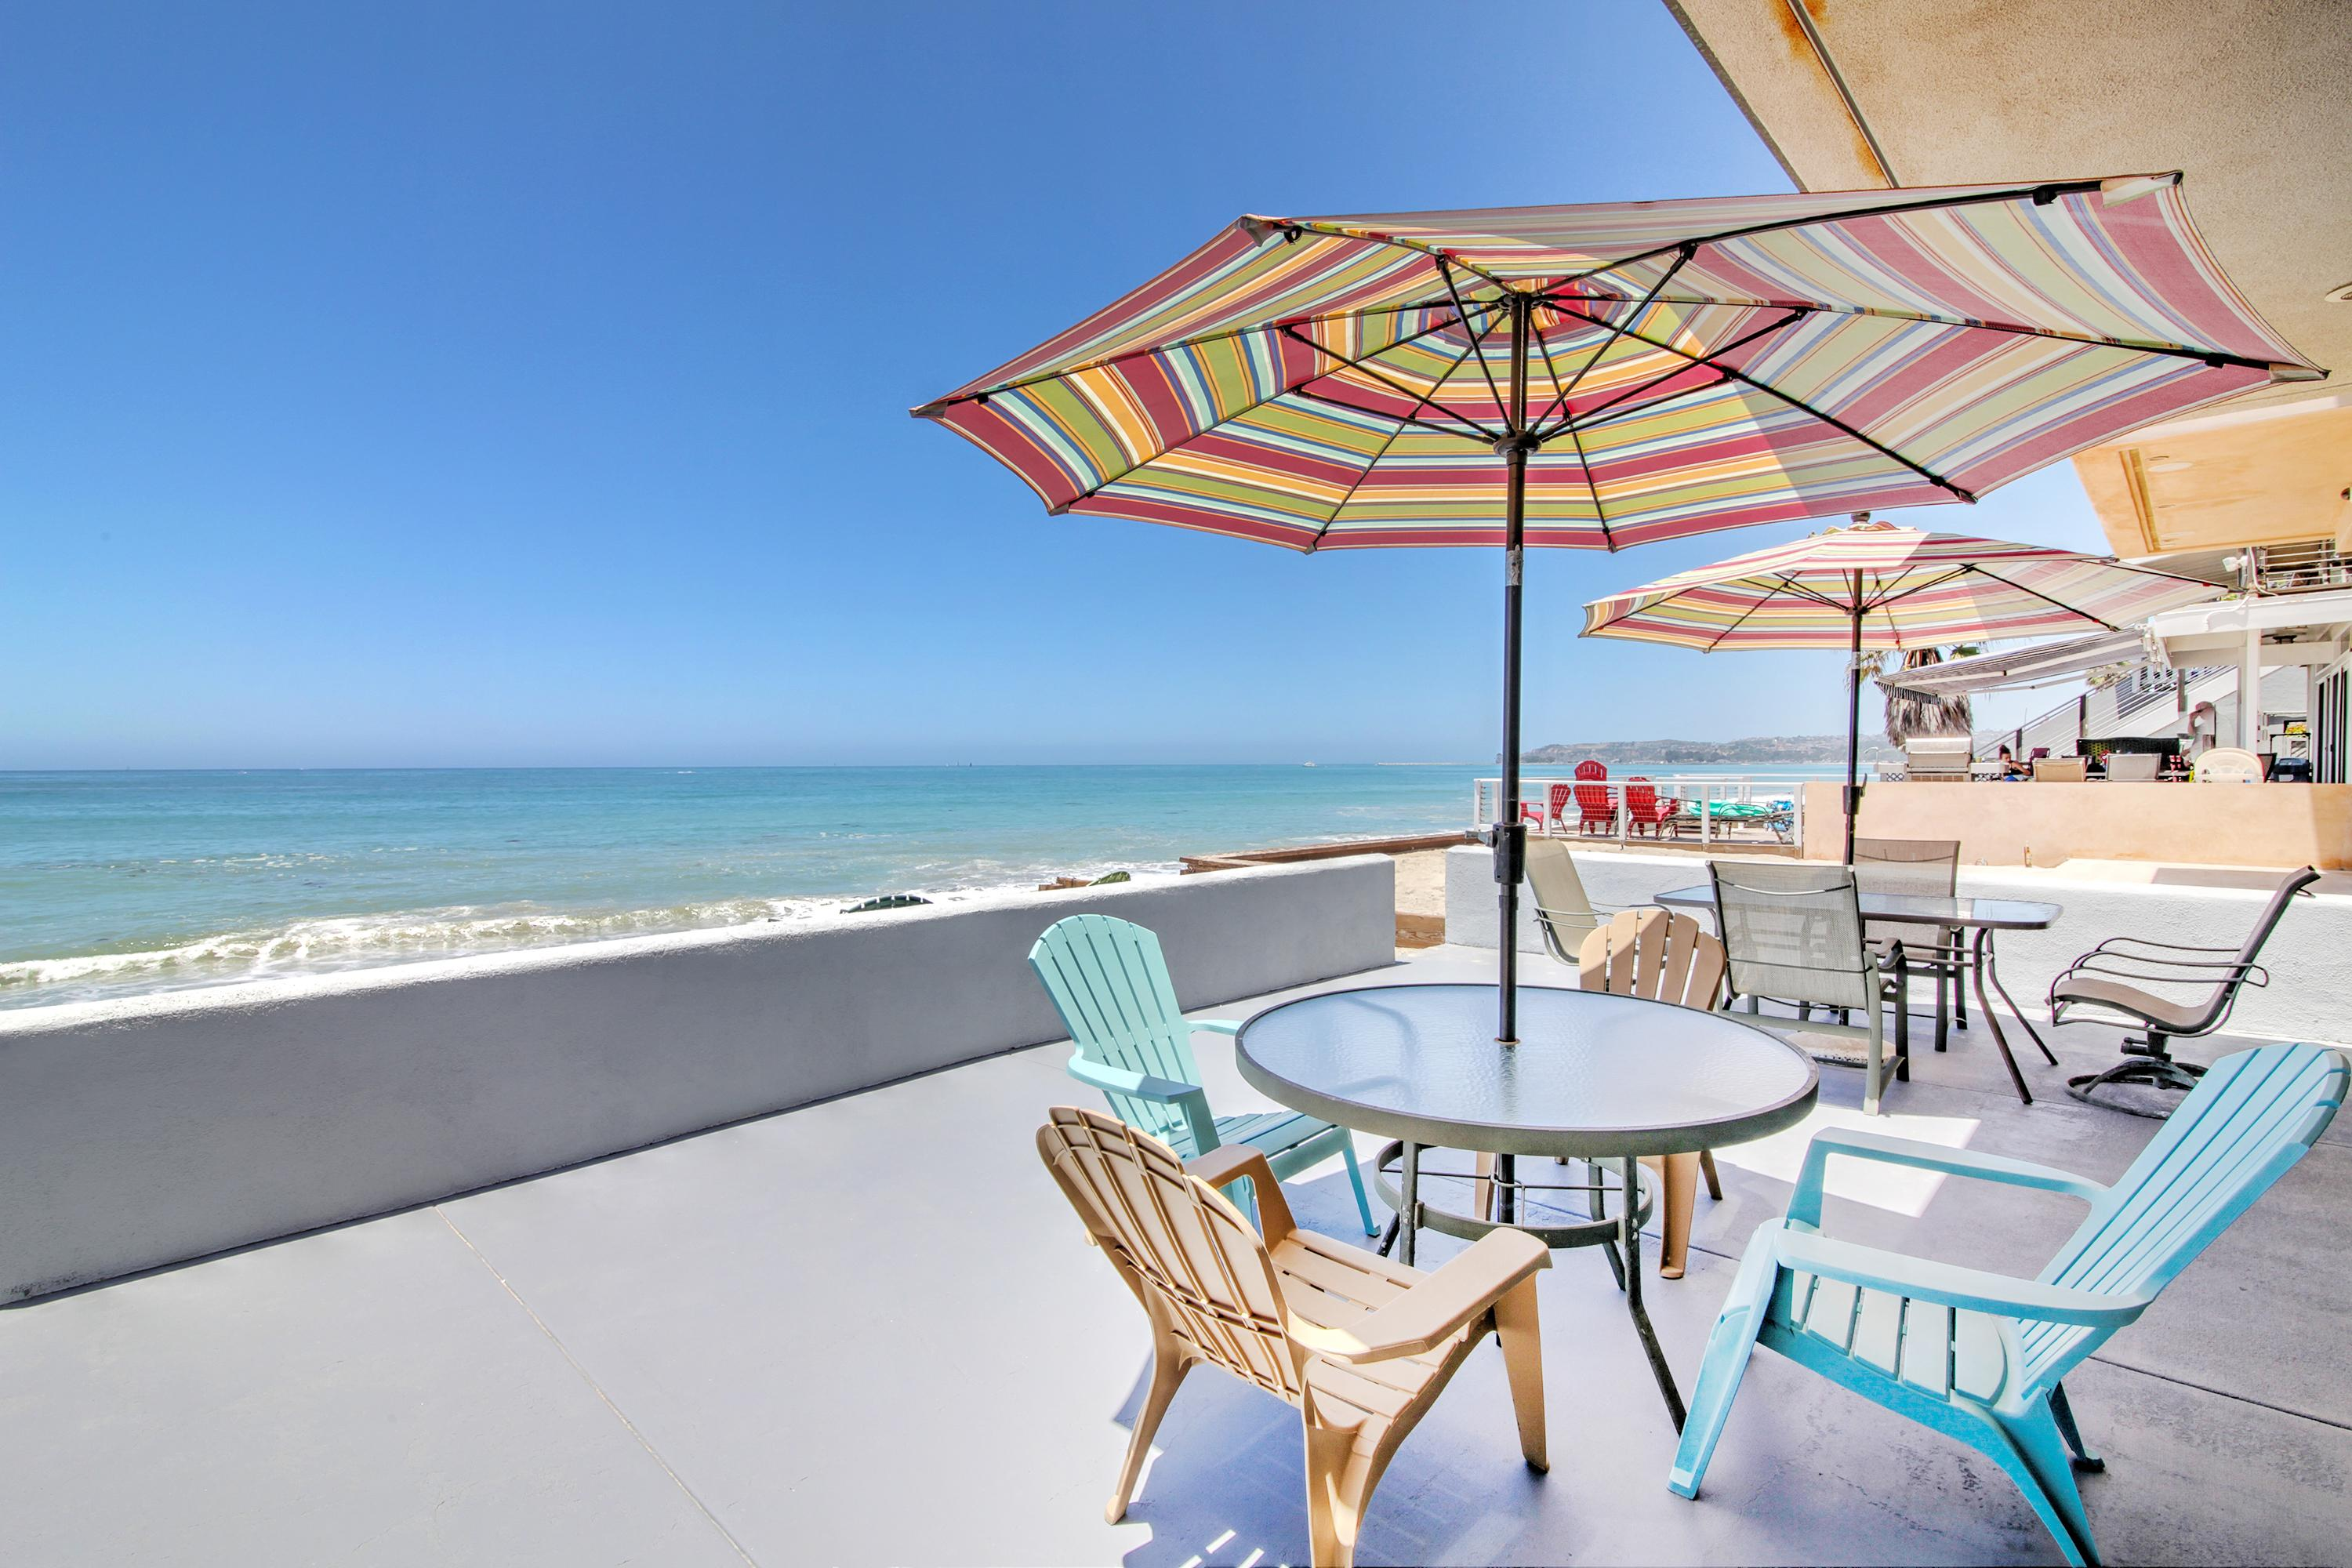 Welcome to Capistrano Beach! This rental is professionally managed by TurnKey Vacation Rentals.